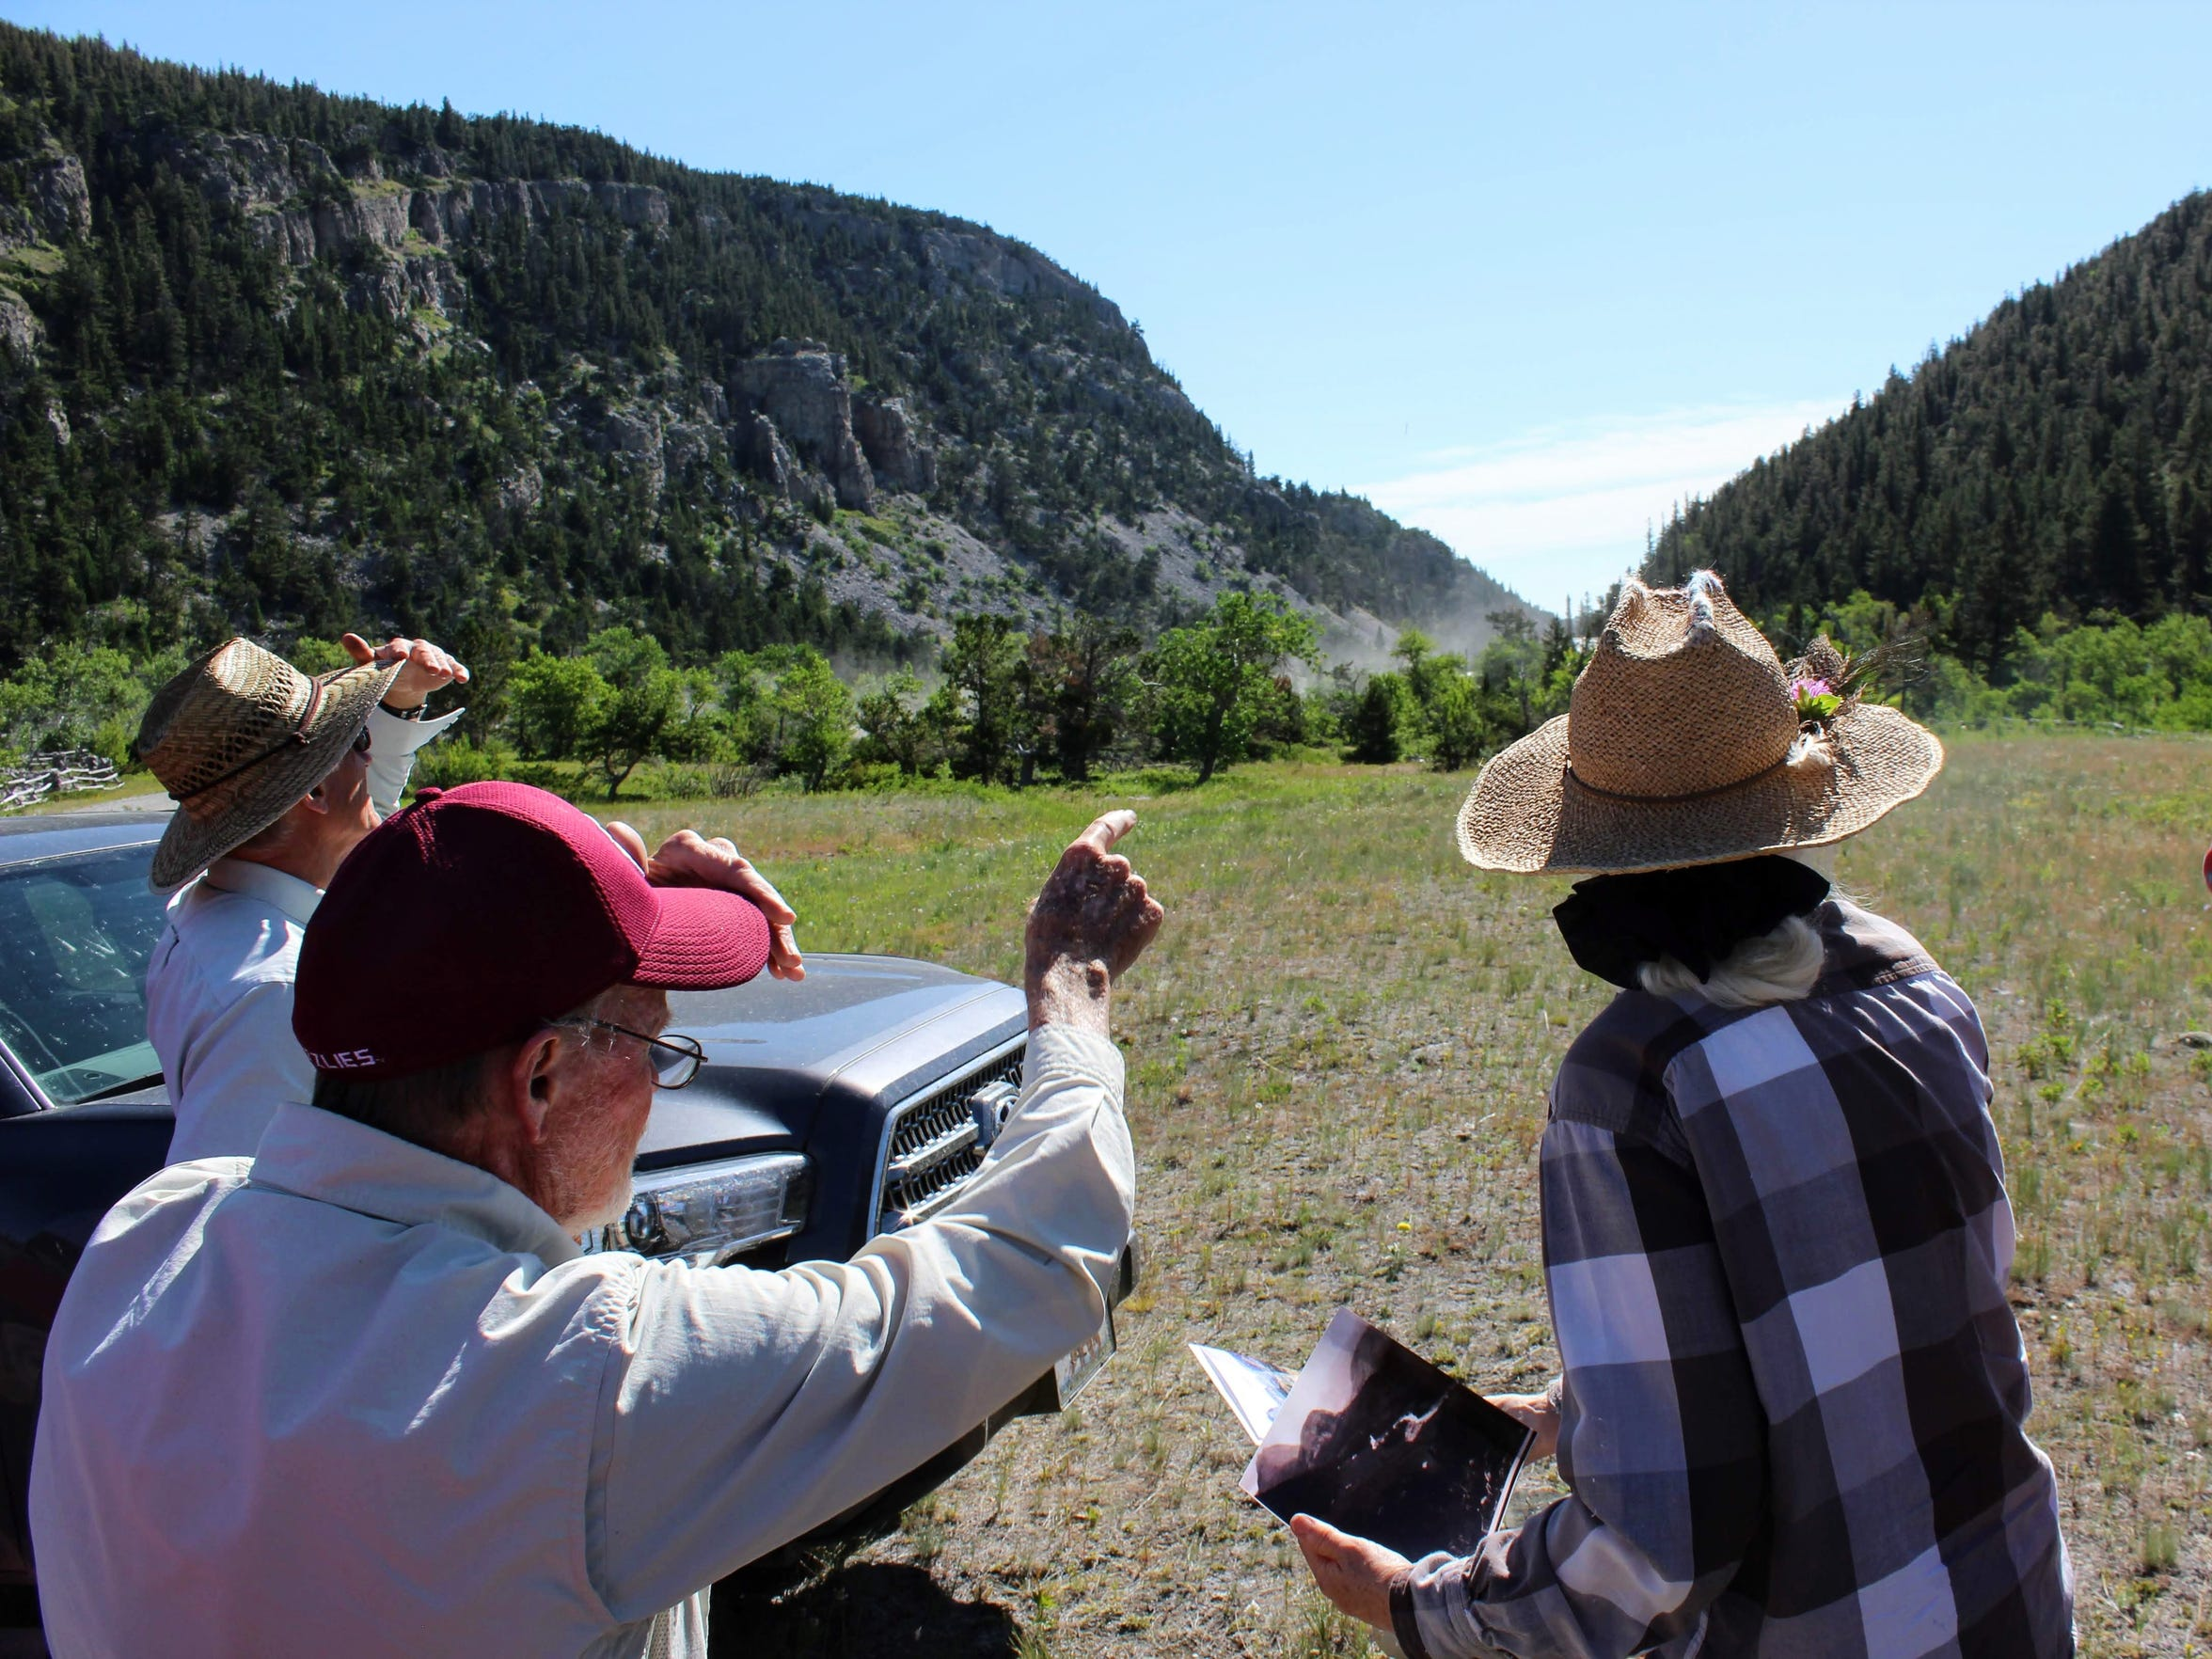 Dave Shea, Old Trail Museum board member and naturalist, points out the location of an old Metis settlement near the Teton Canyon Cemetery. The Metis people originated when the Hudson Bay Company intermarried with Cree Assiniboine women.